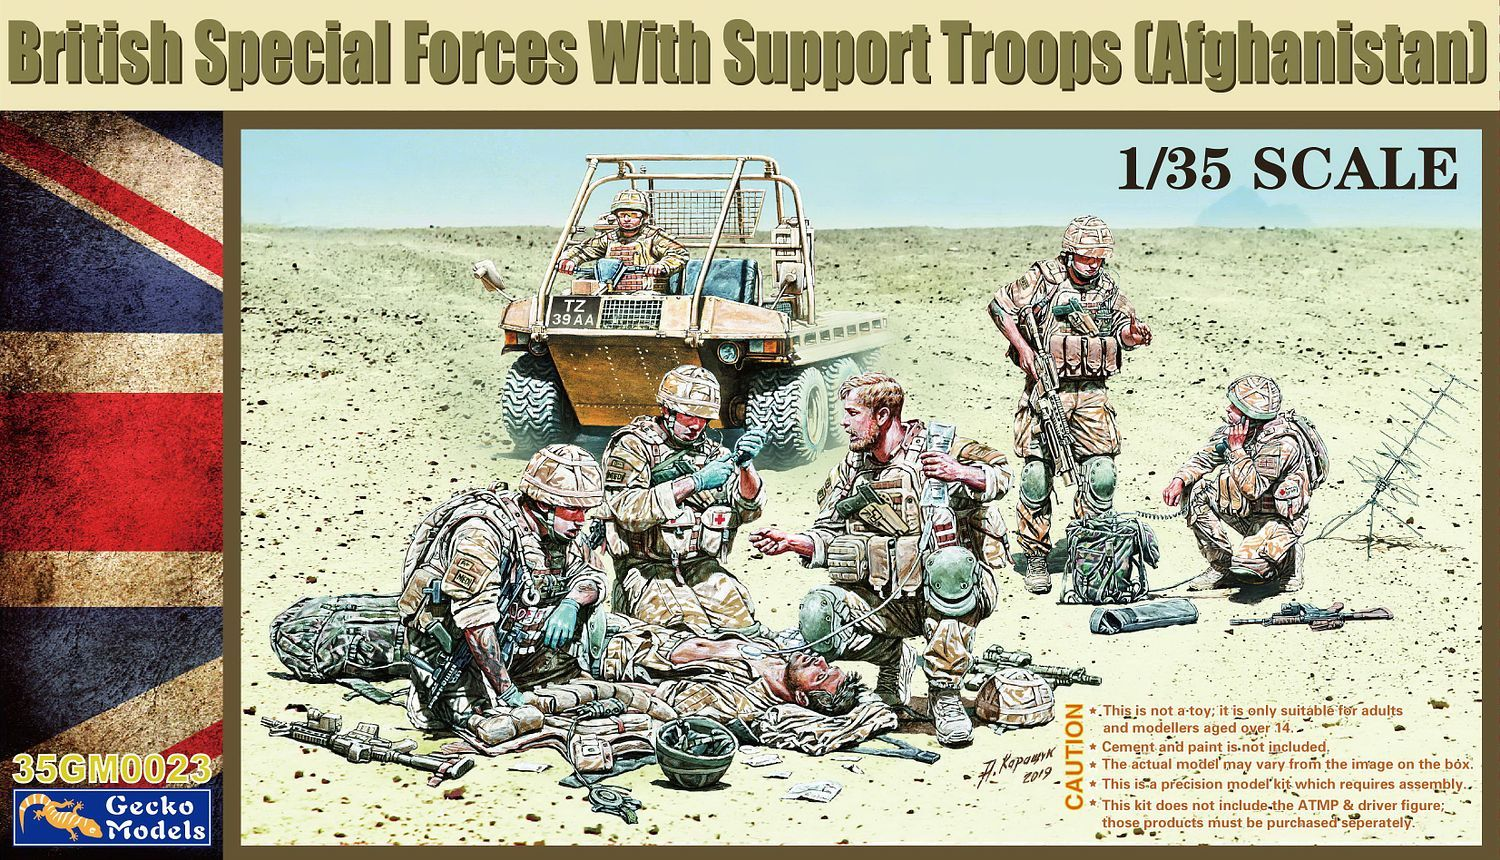 Gecko 1/35 British Special Forces with Support Troops (Afghanistan)